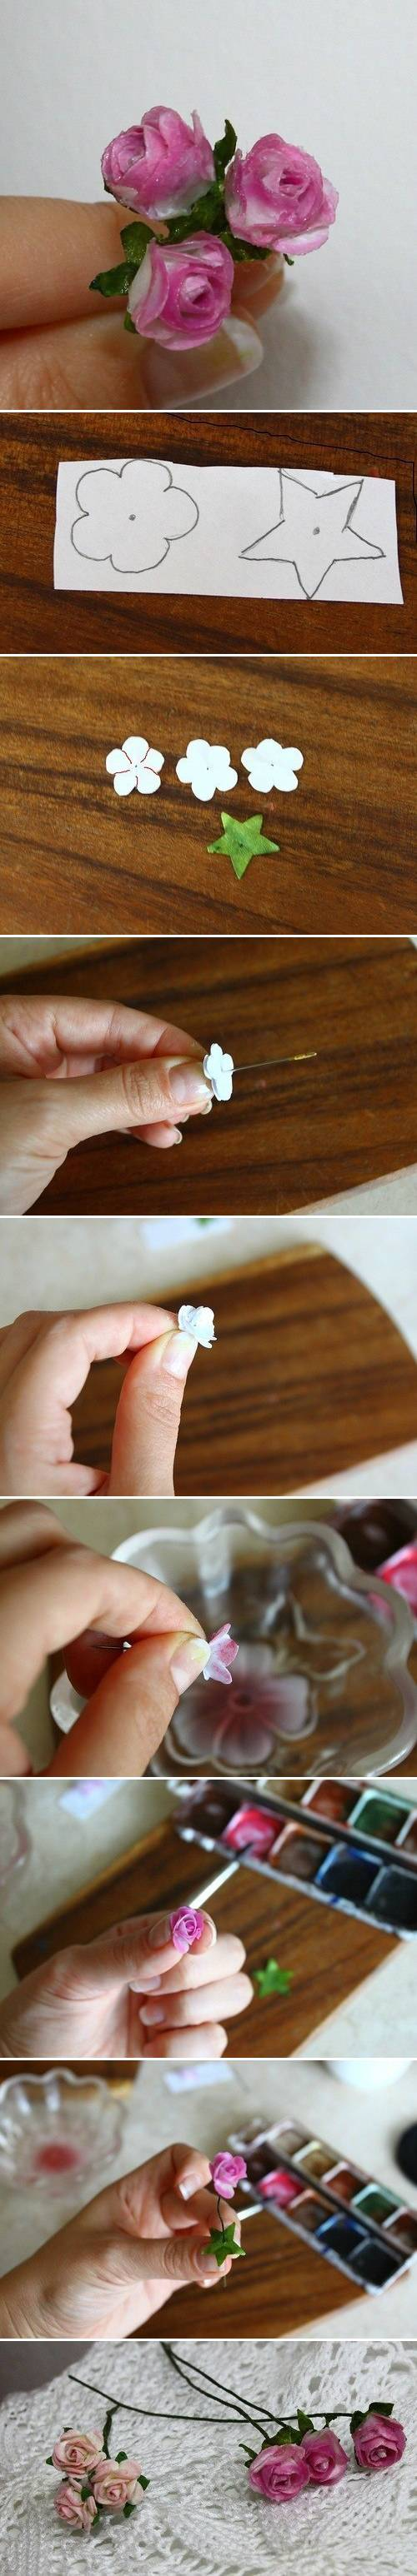 How to make Delicate Mini Roses step by step DIY tutorial instructions